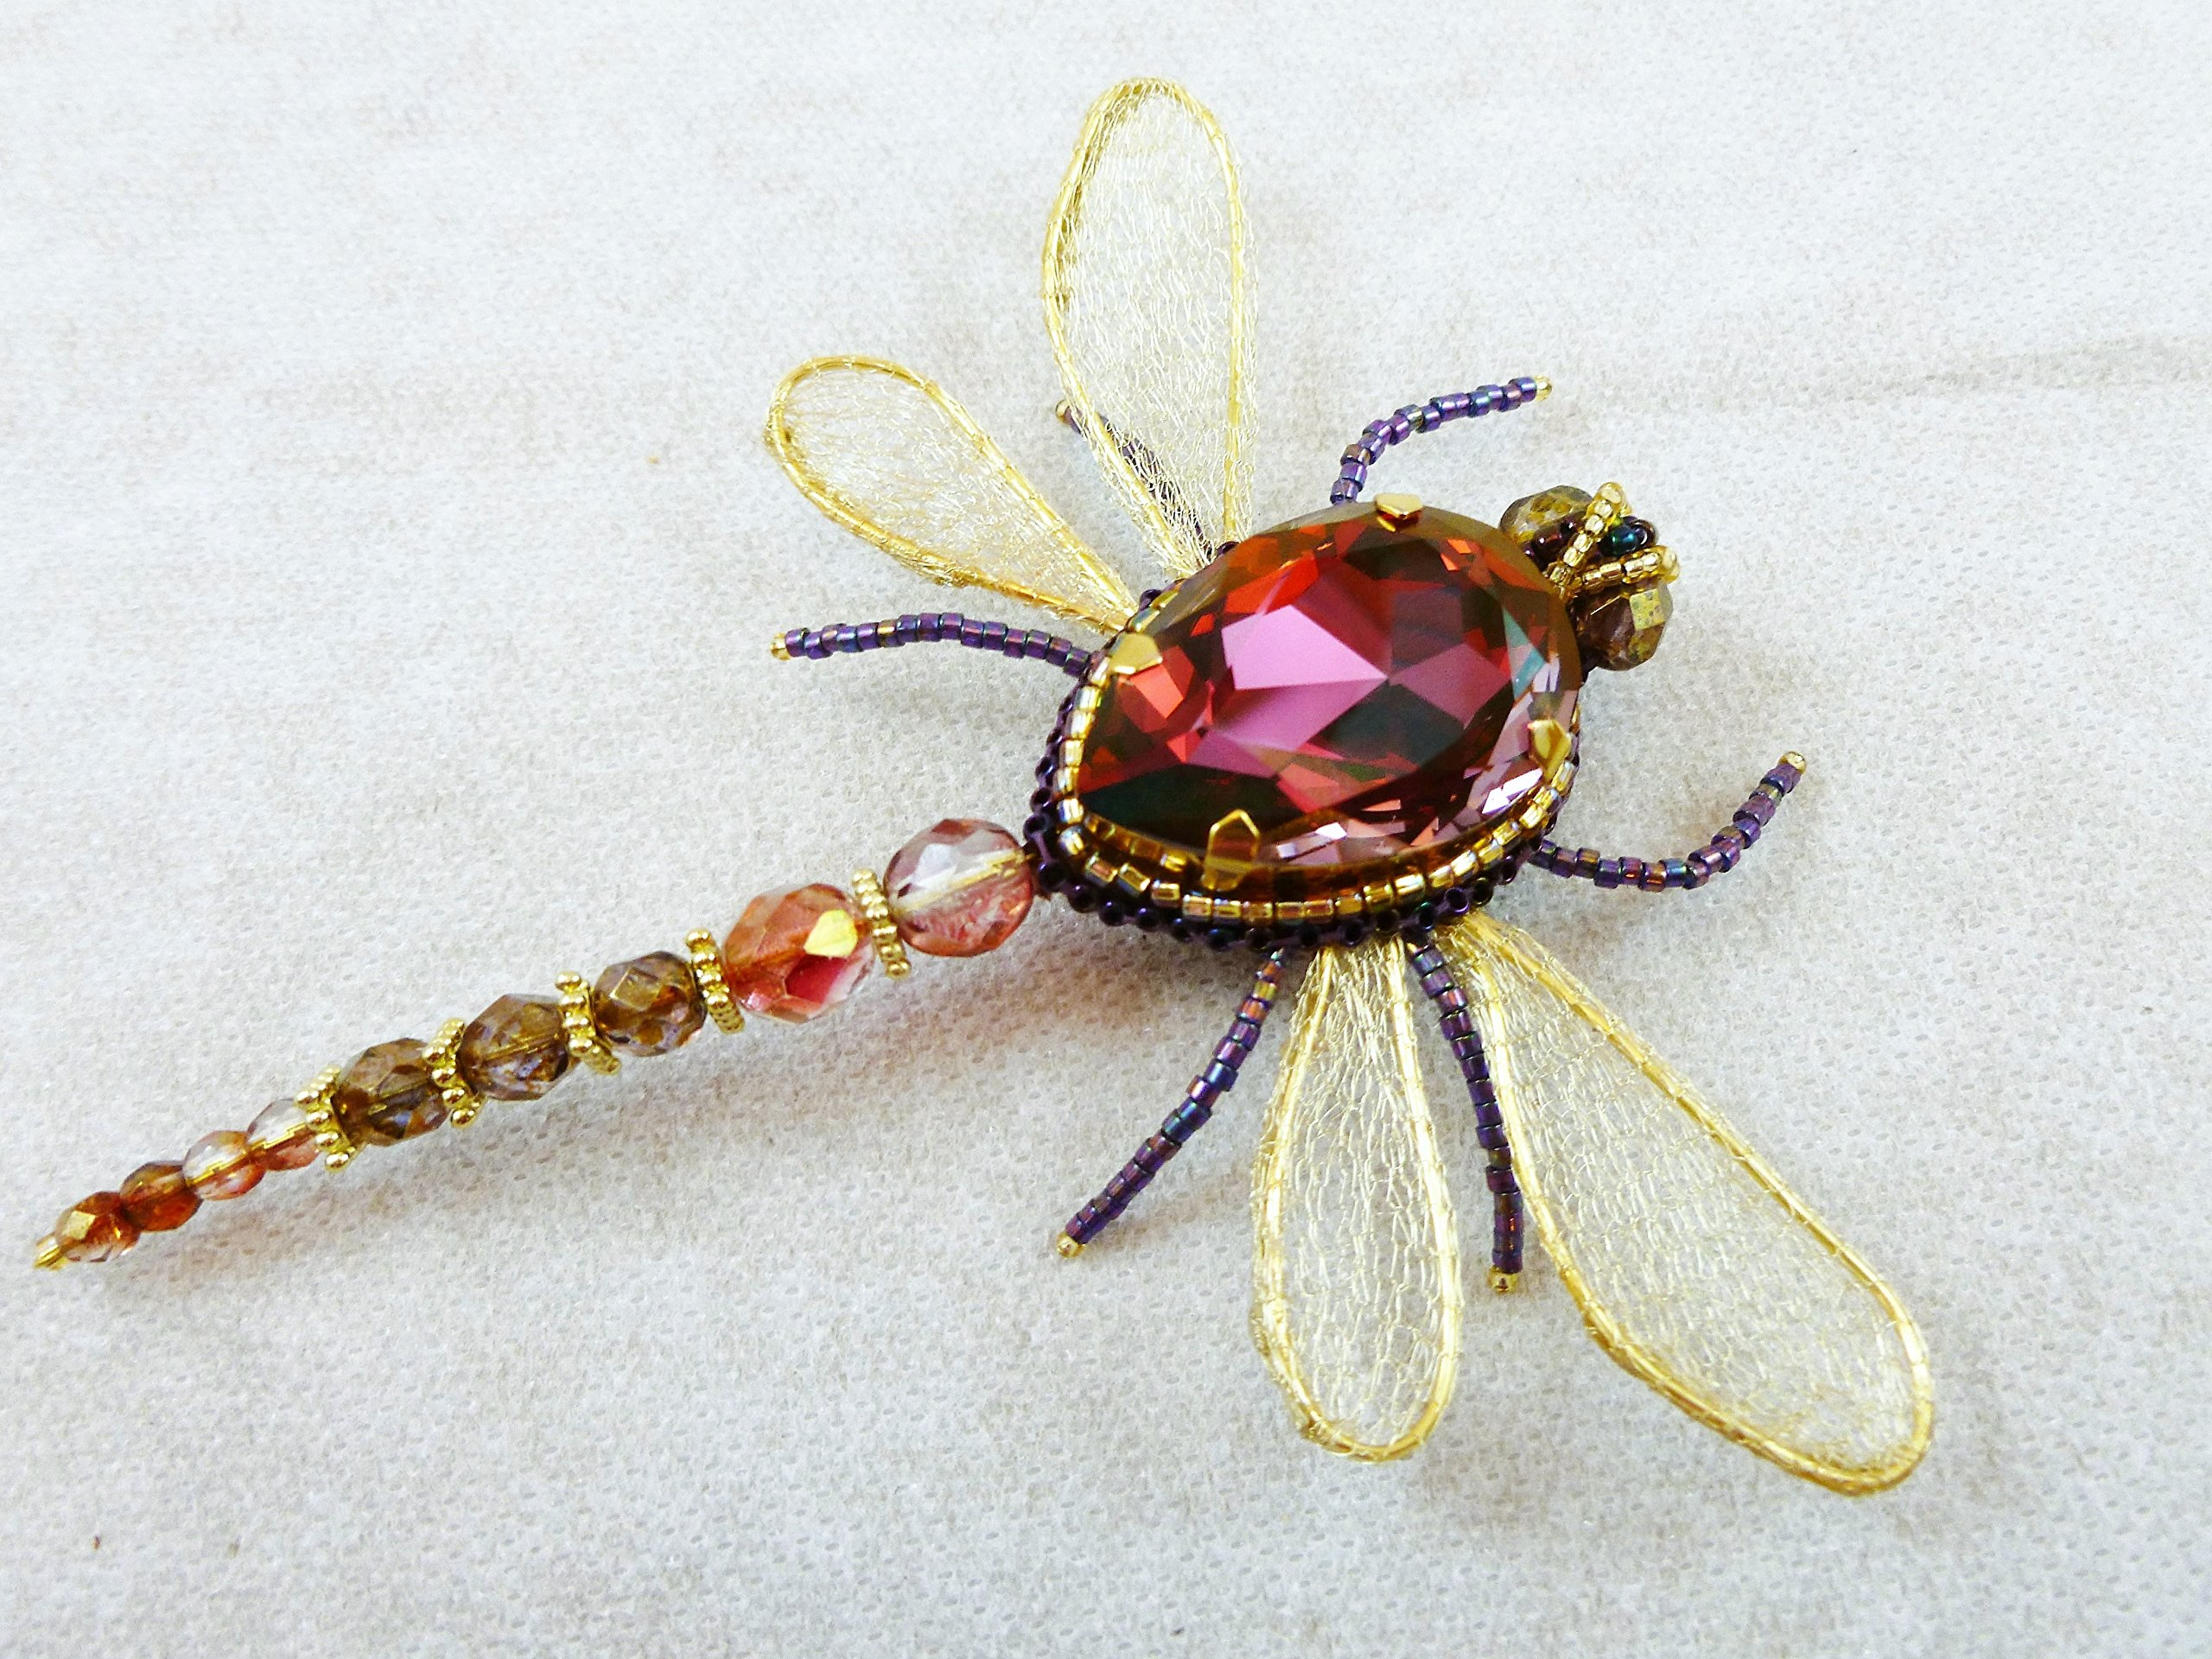 Dragonfly Brooch, Insect jewelry, Swarovski crystal Dragonfly brooch, OOAK Dragonfly pin, Insect pin, Designer insect Brooch with Swarovski